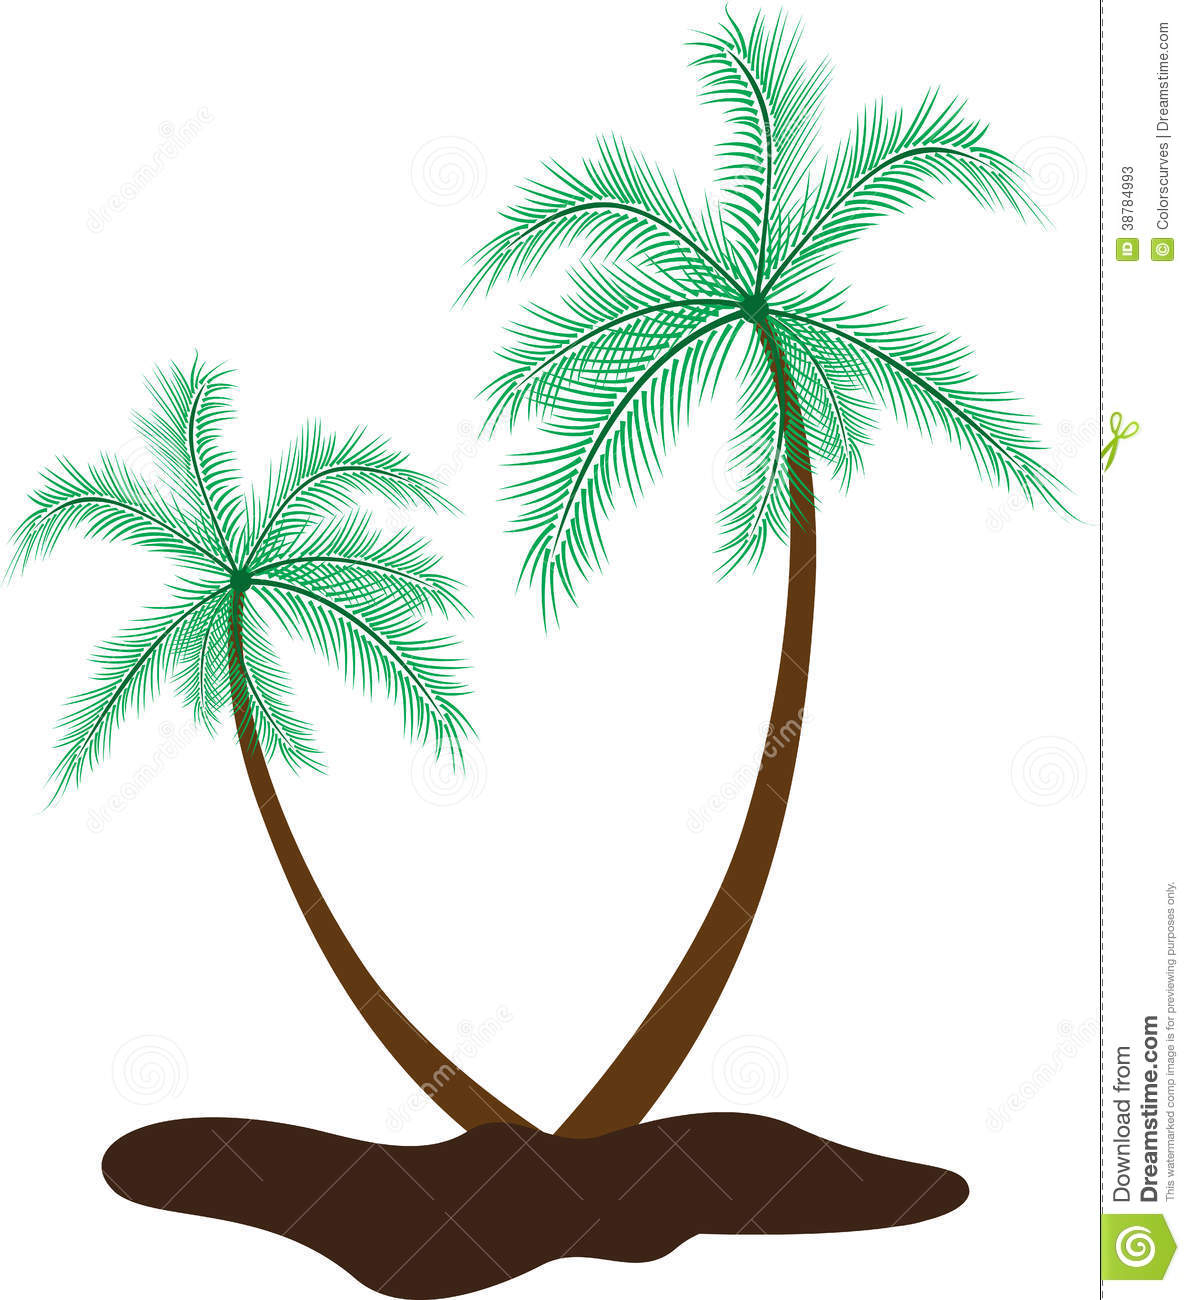 hight resolution of 1190x1300 coconut tree images hd for drawing coconut tree stock vector